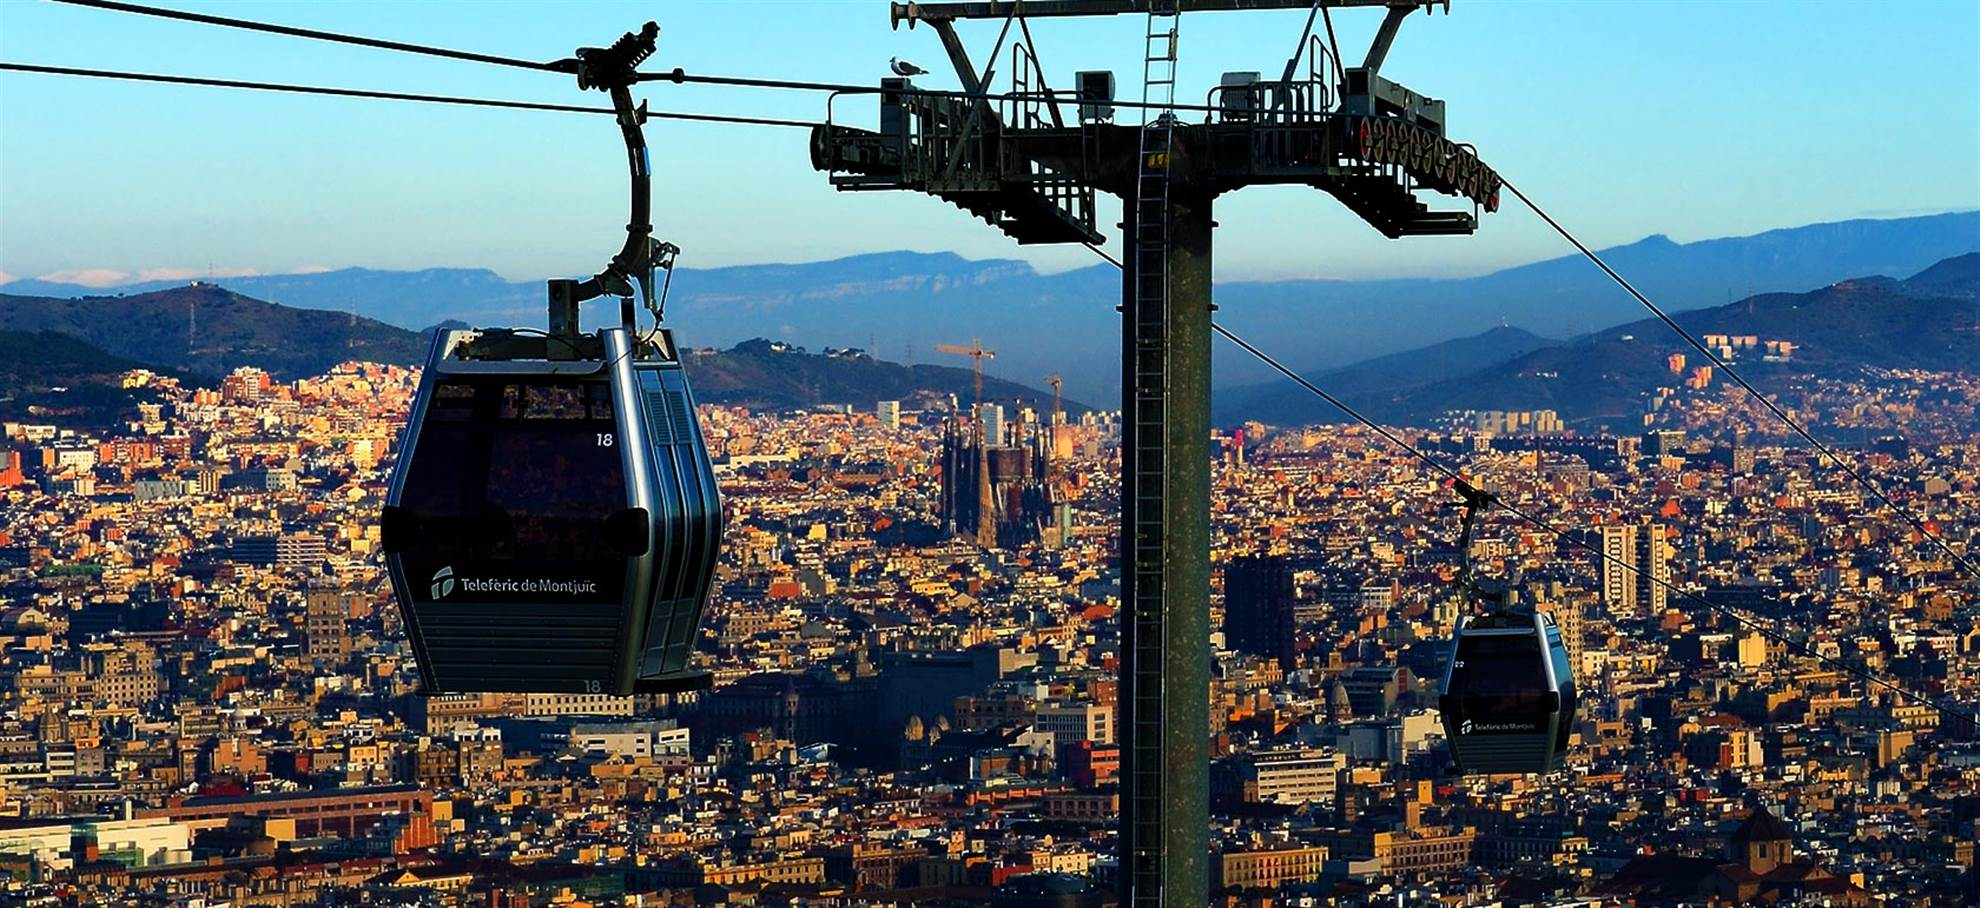 Teleferic de Montjuic Tickets